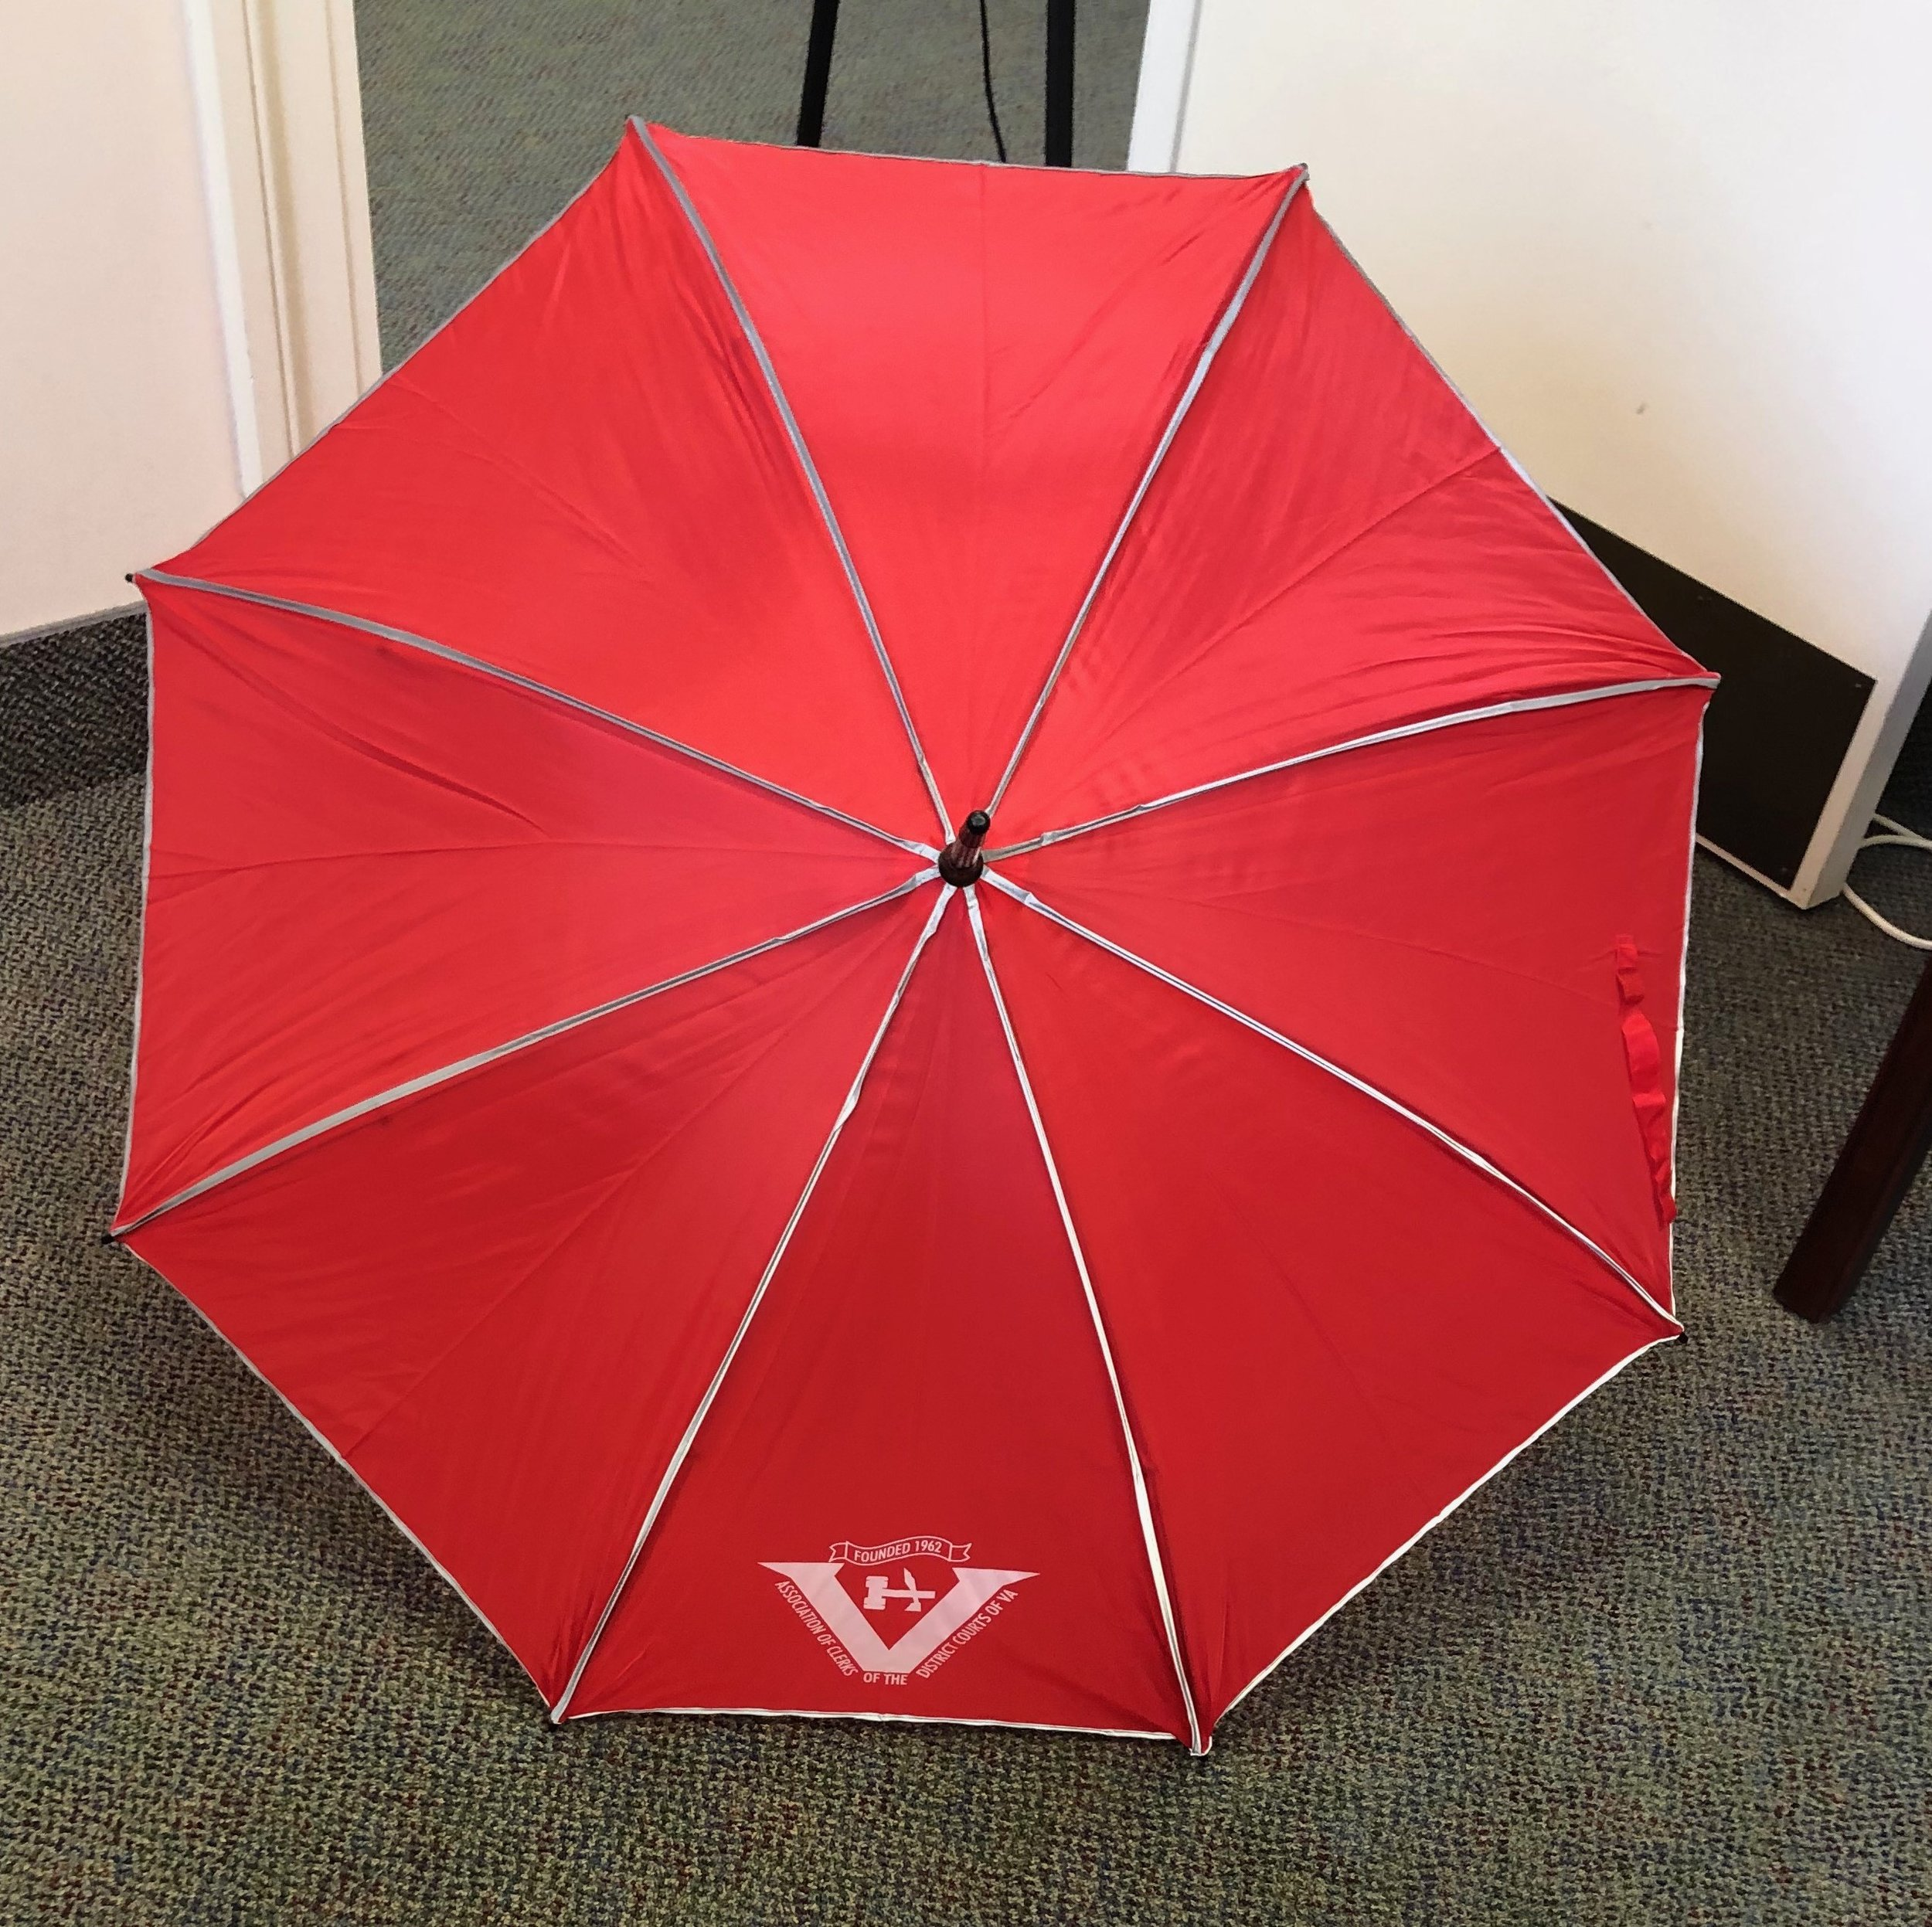 Red Umbrella $20.00